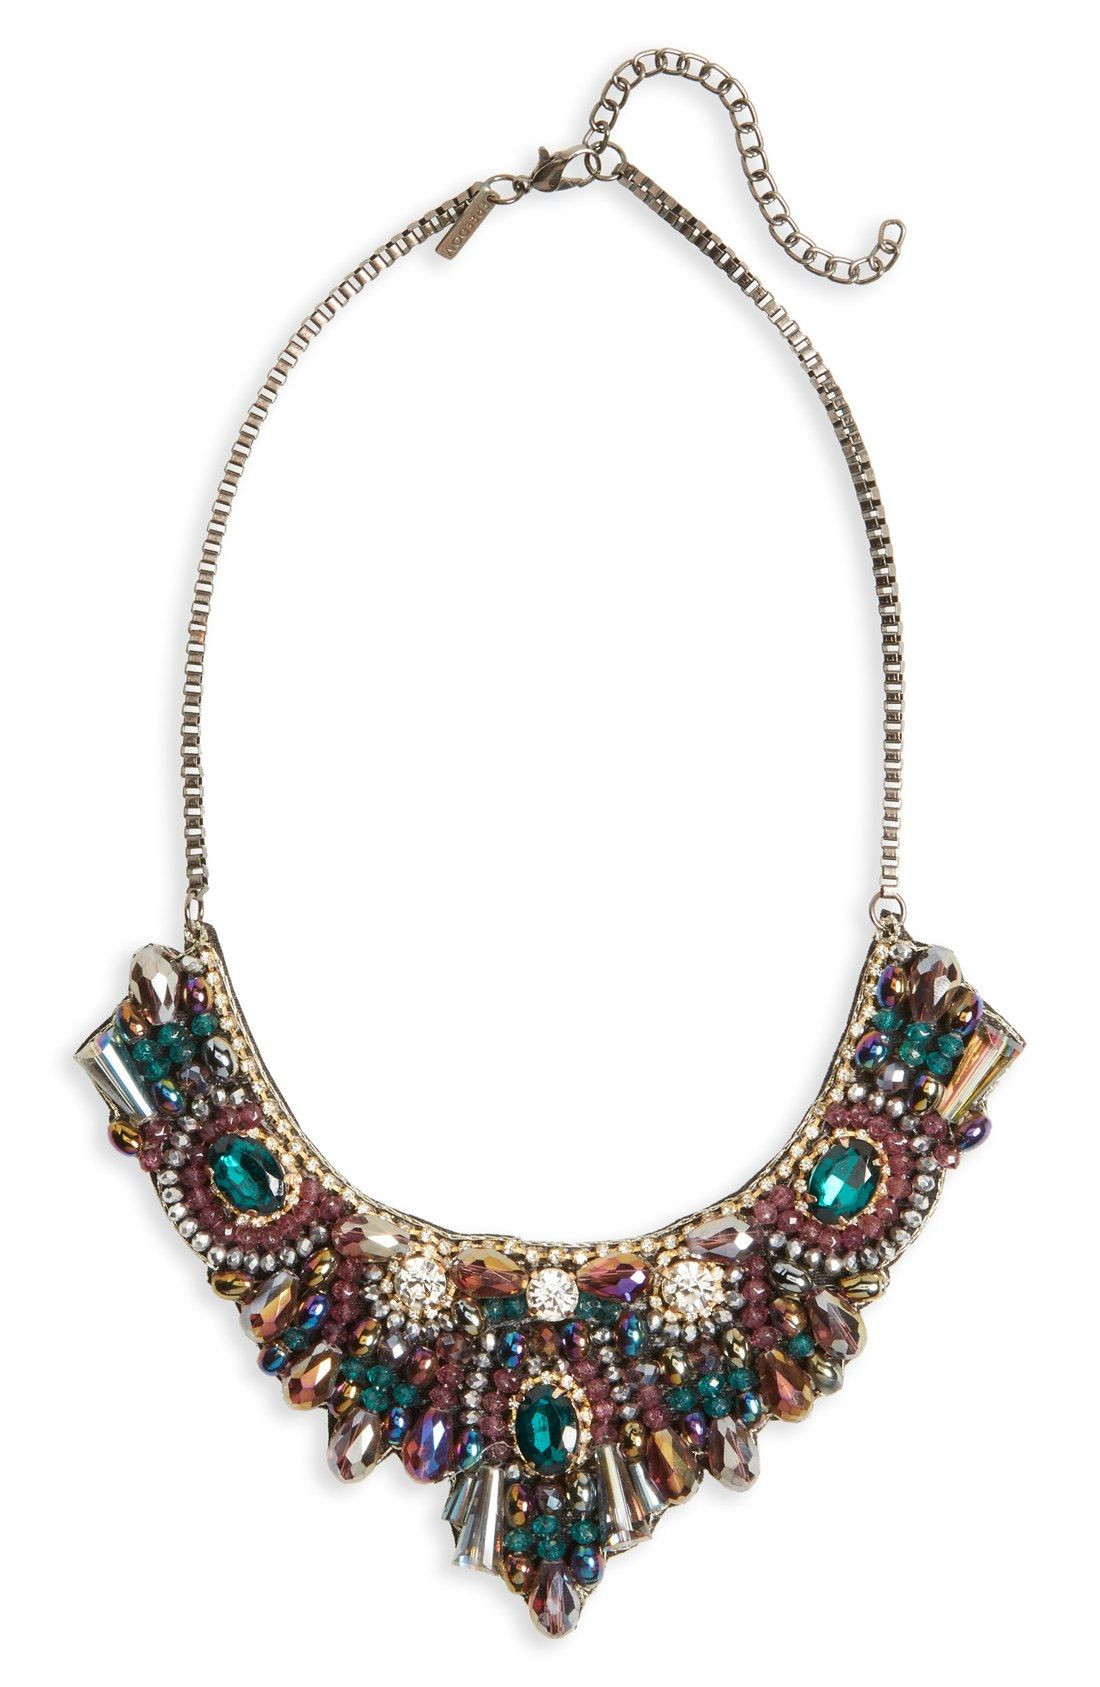 Preparing to get glam this party season with this stunning statement necklace featuring an array of multicolored beads and sparkling crystals.